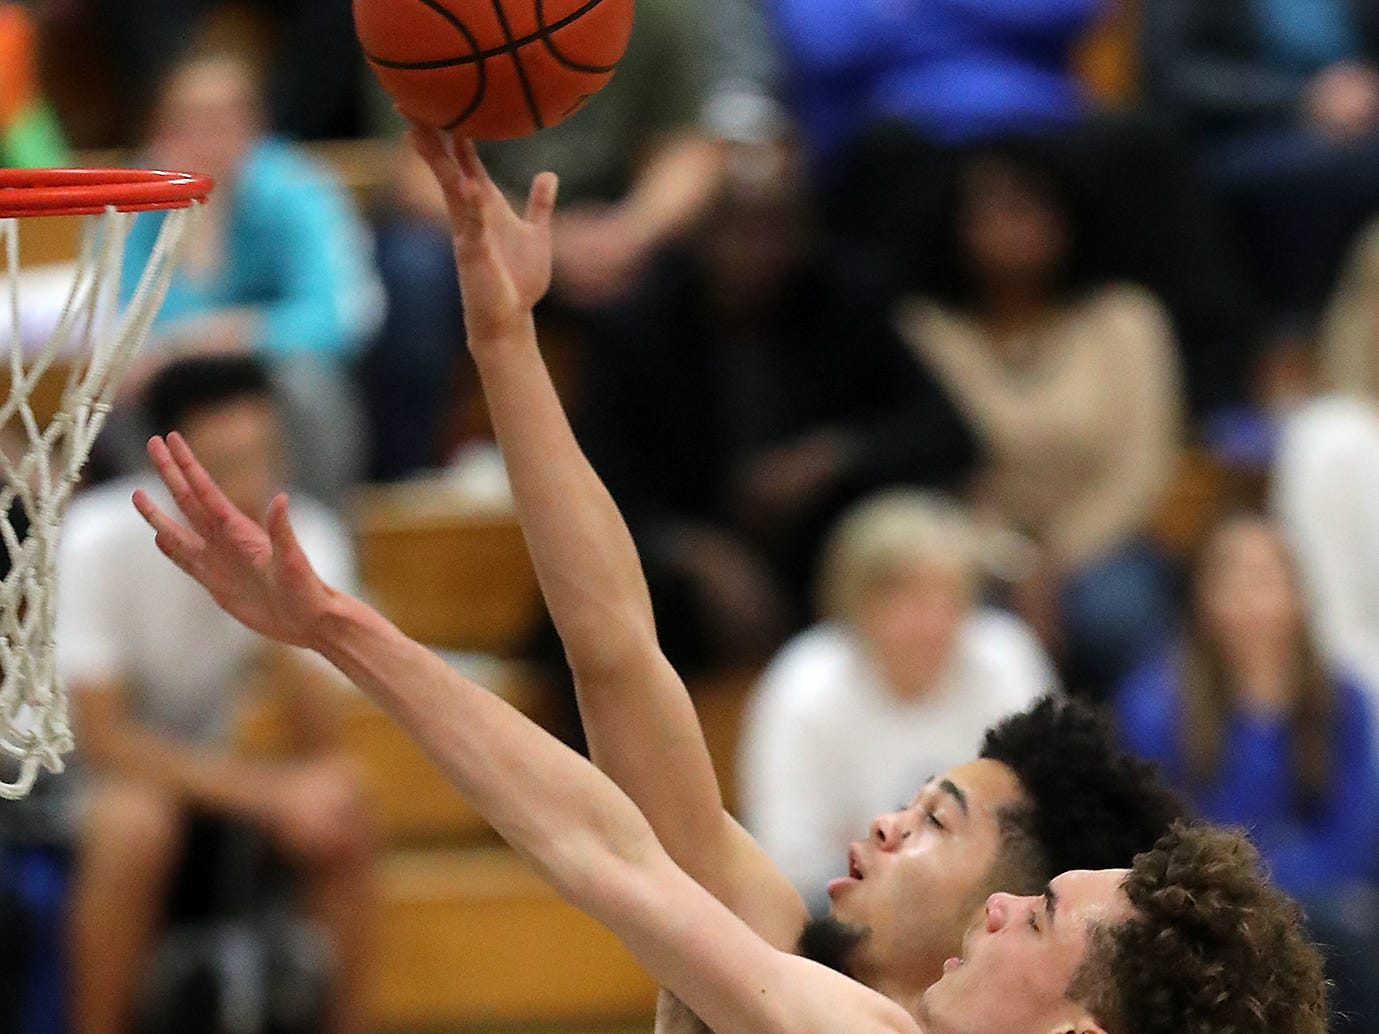 Olympic's Caleb Morgan (right) tries to block the shot of North Kitsap's Shaa Humphrey during the first half of their game at Olympic High on Friday, December 14, 2018.